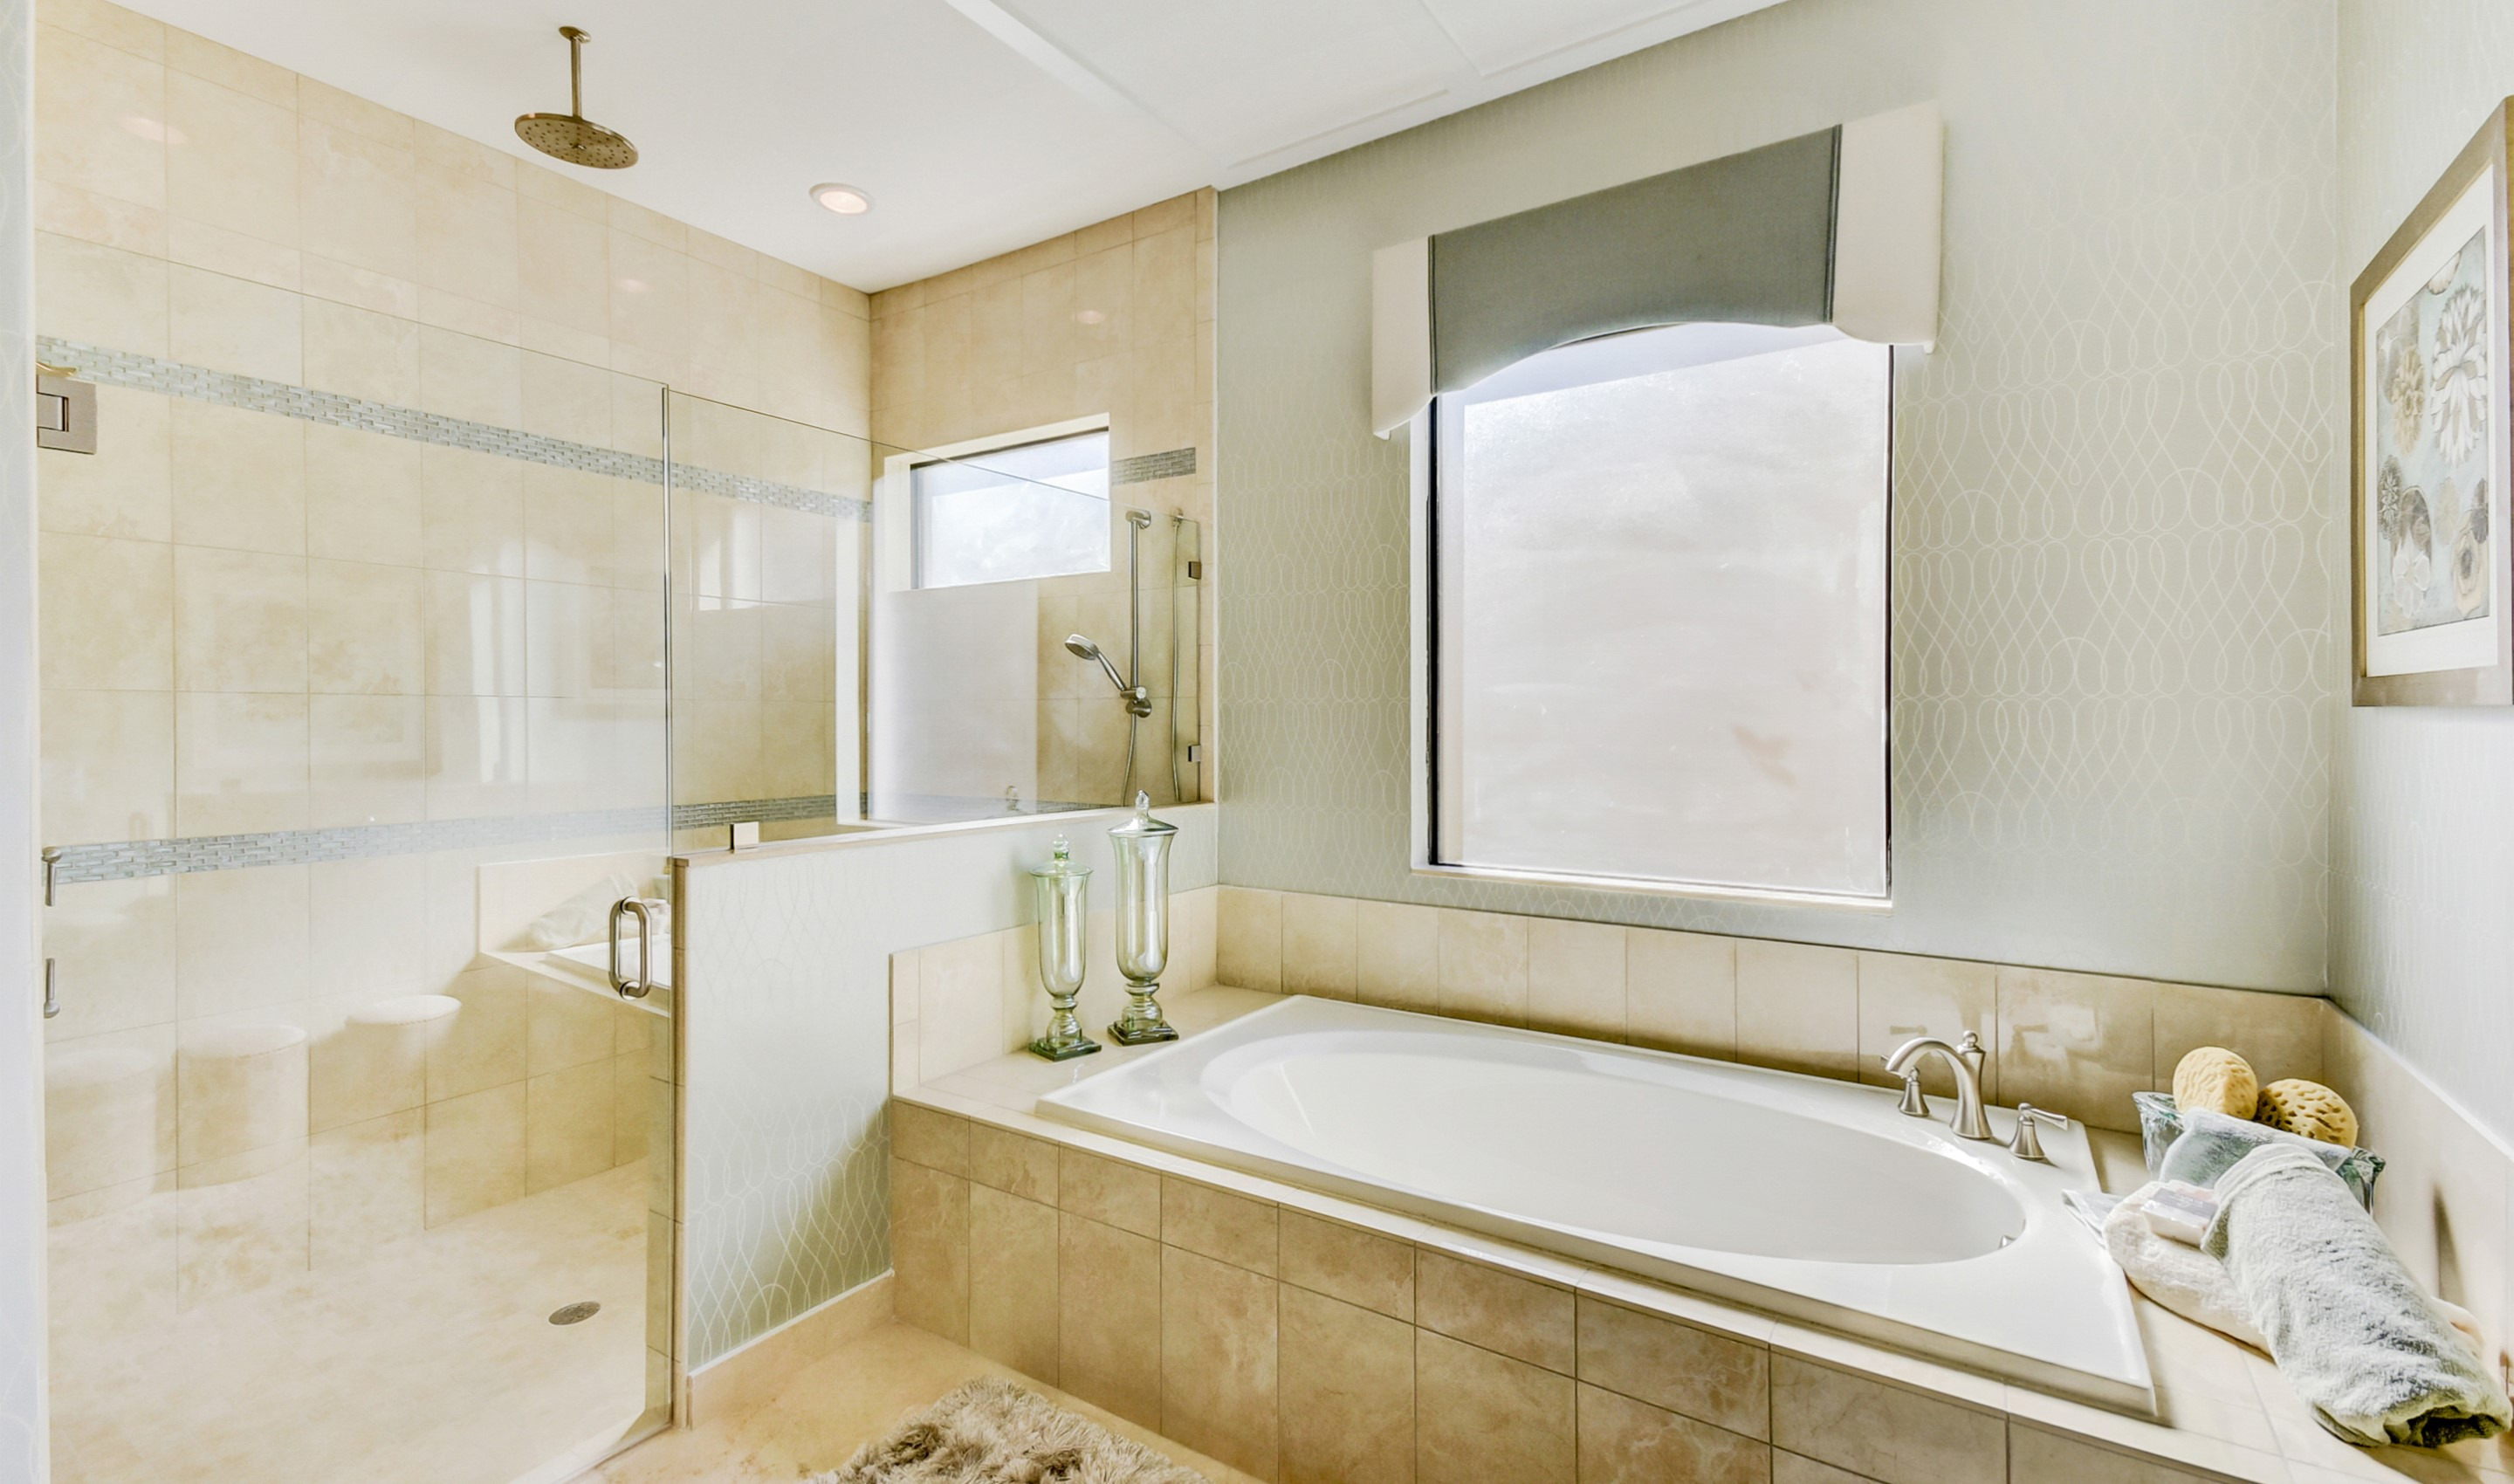 Fabulous soaker tub and shower